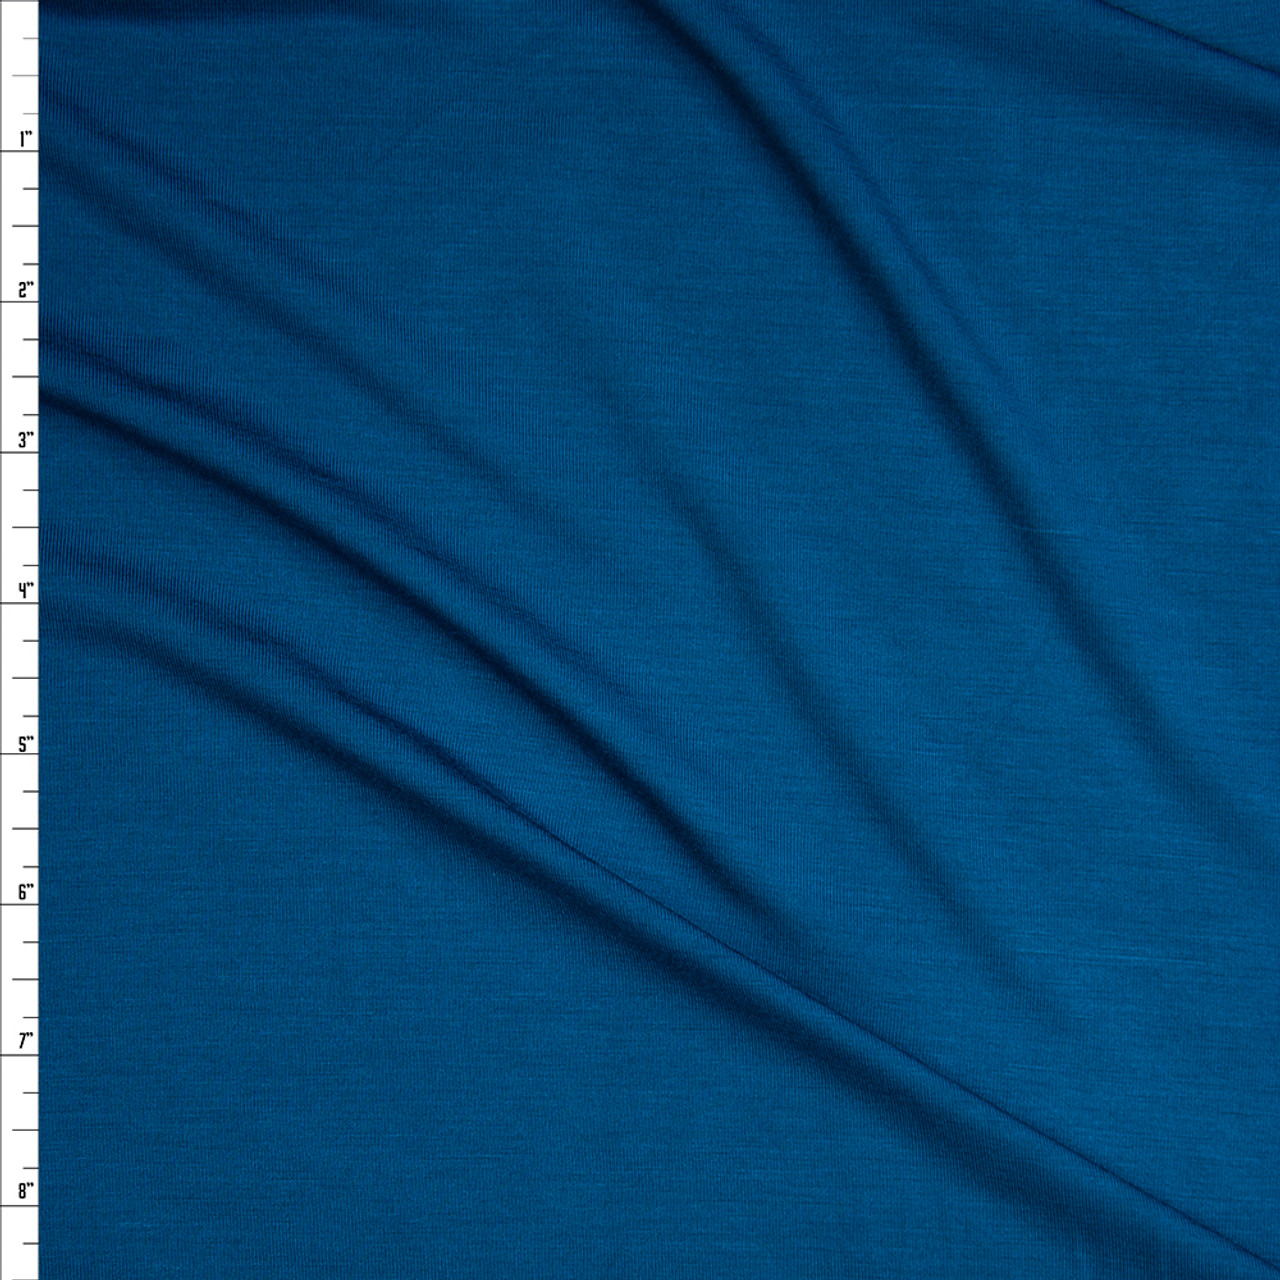 3126f9bed3e ... Teal Stretch Modal Jersey Knit Fabric By The Yard - Wide shot